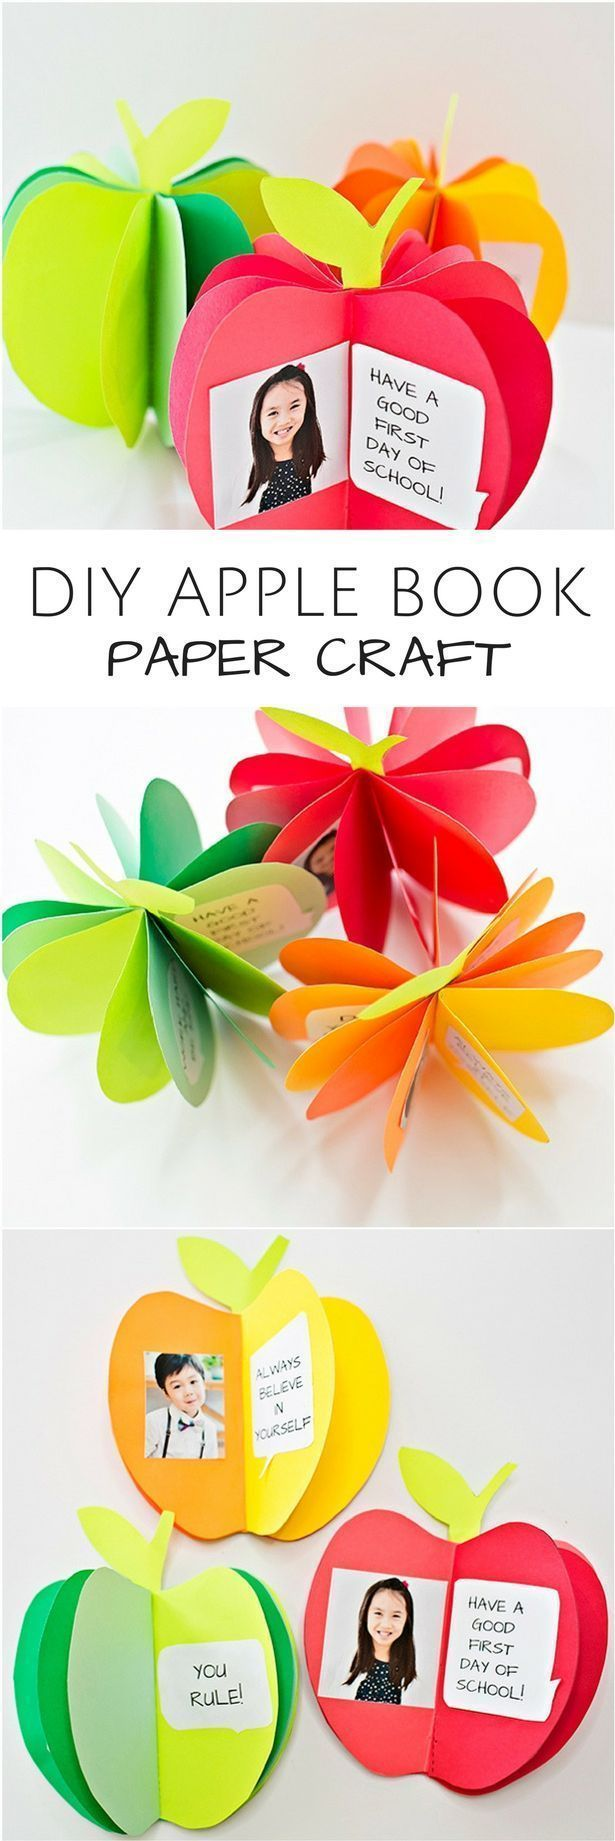 DIY 3D Apple Book Paper Craft. Cute back to school craft for kids or fall autumn art project. Free printable templates included. #fallcraftsforkids